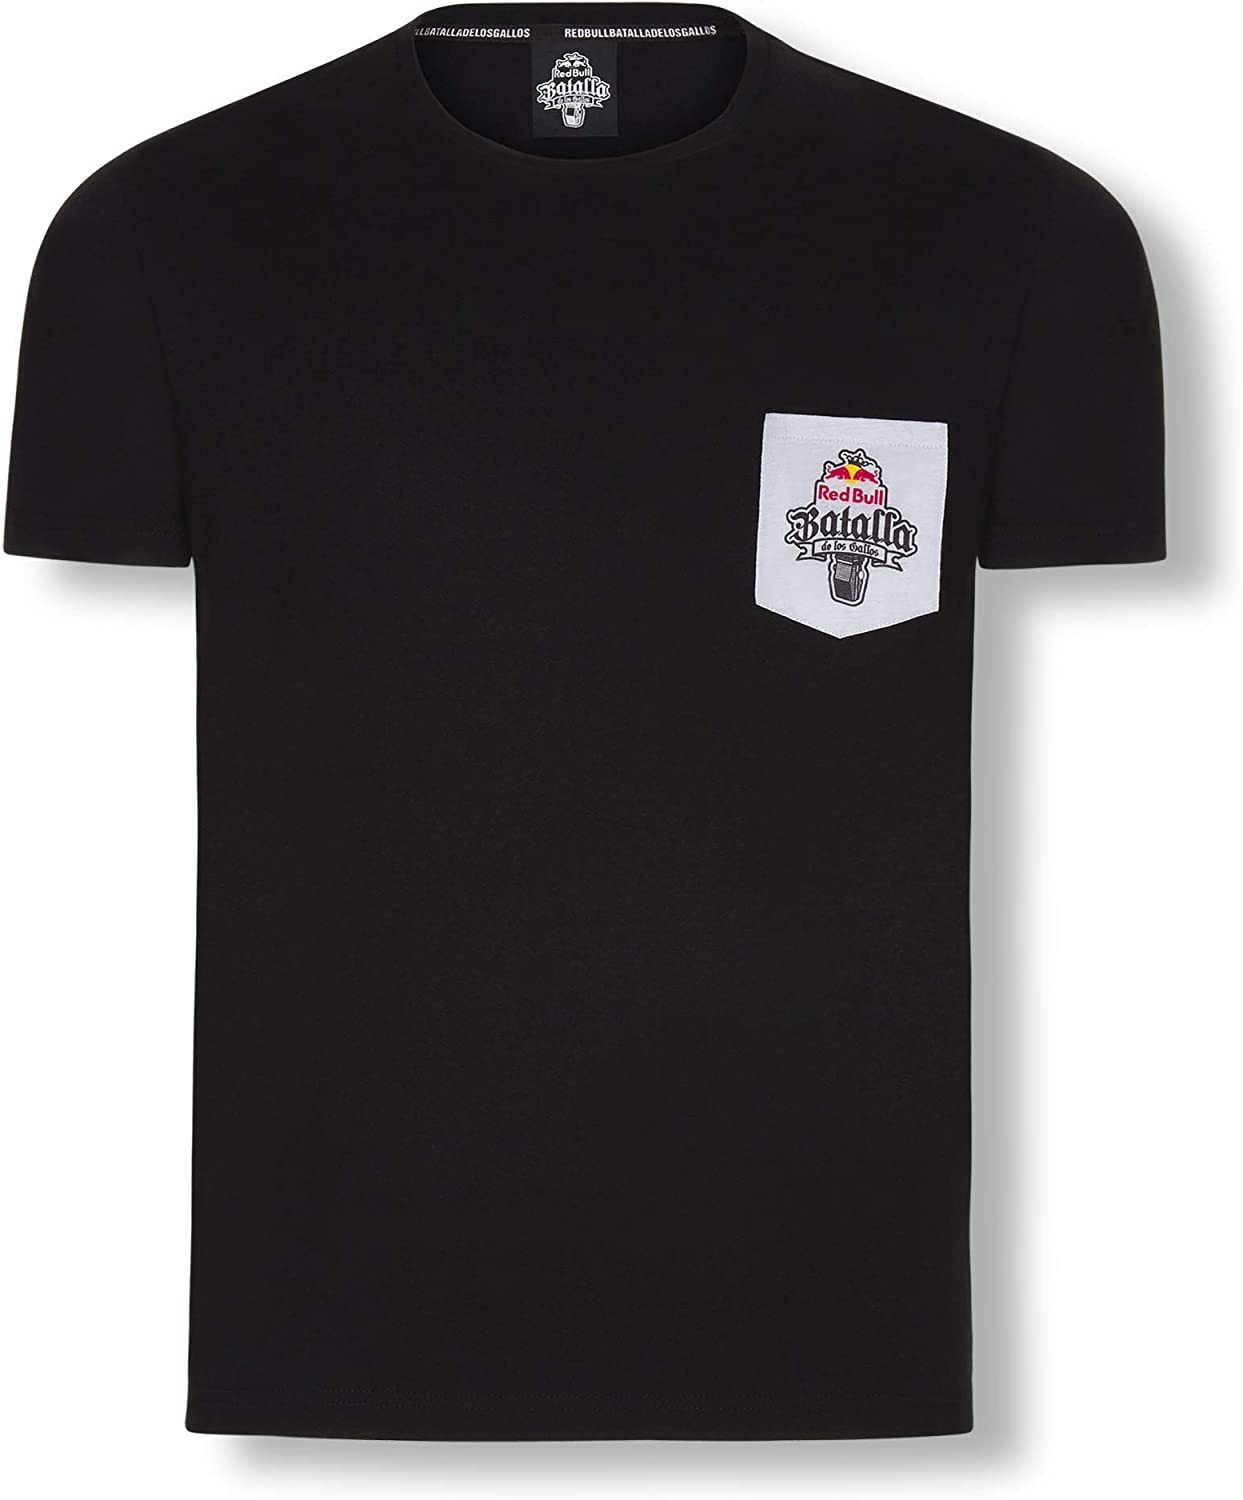 Red Bull Batalla Pocket Camiseta, Negro Hombre Small Top, Batalla ...